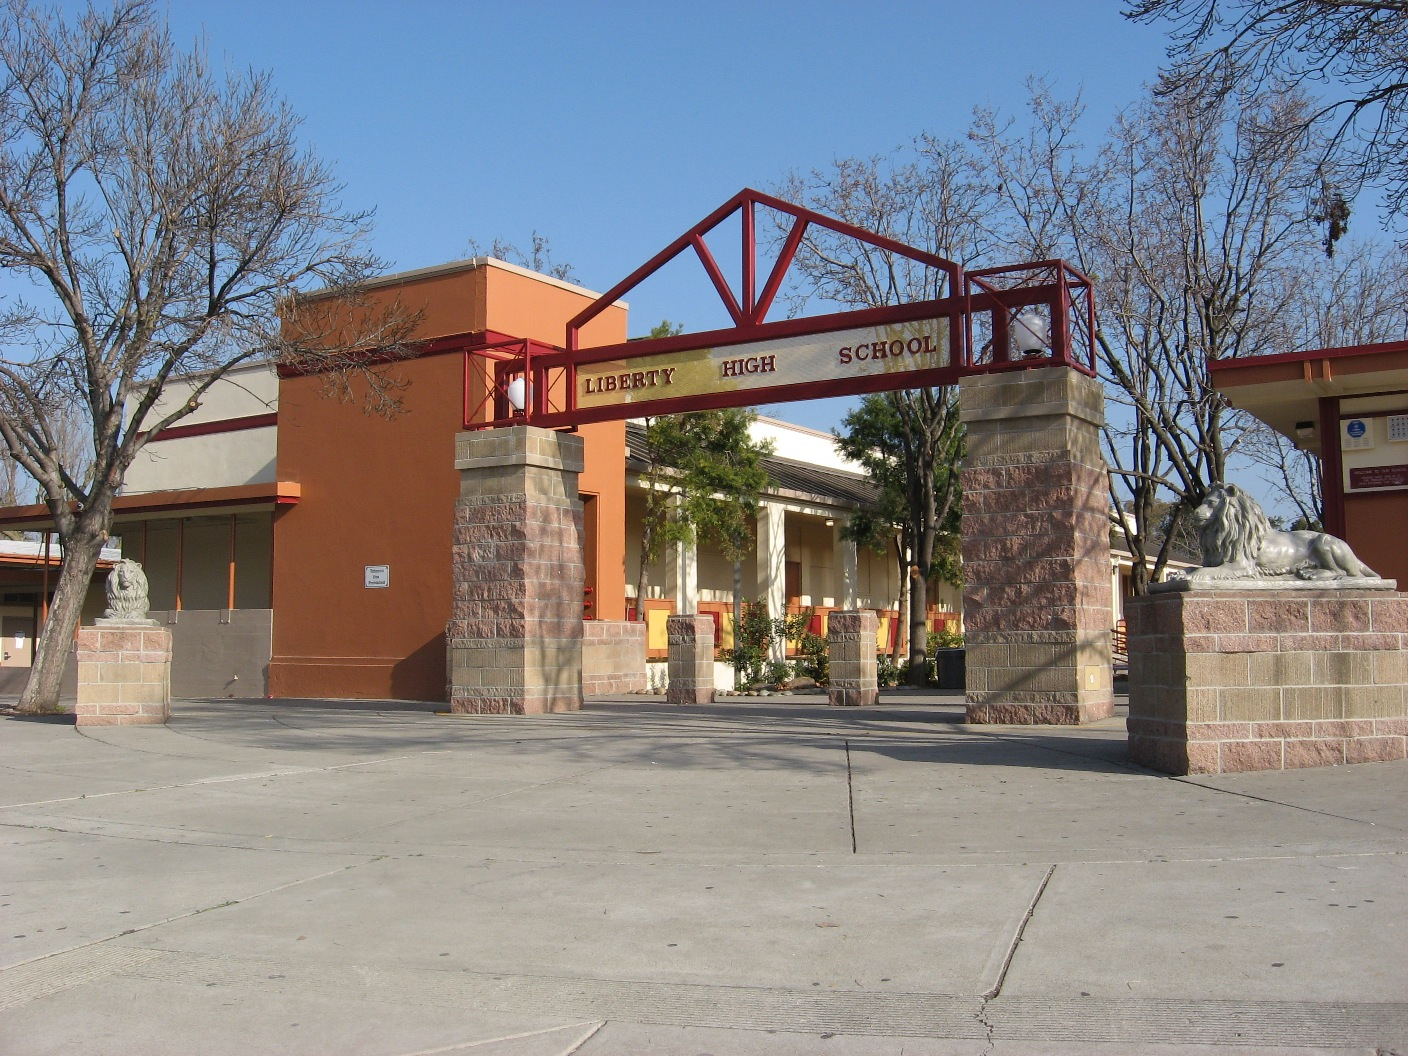 Liberty high school brentwood california for The brentwood